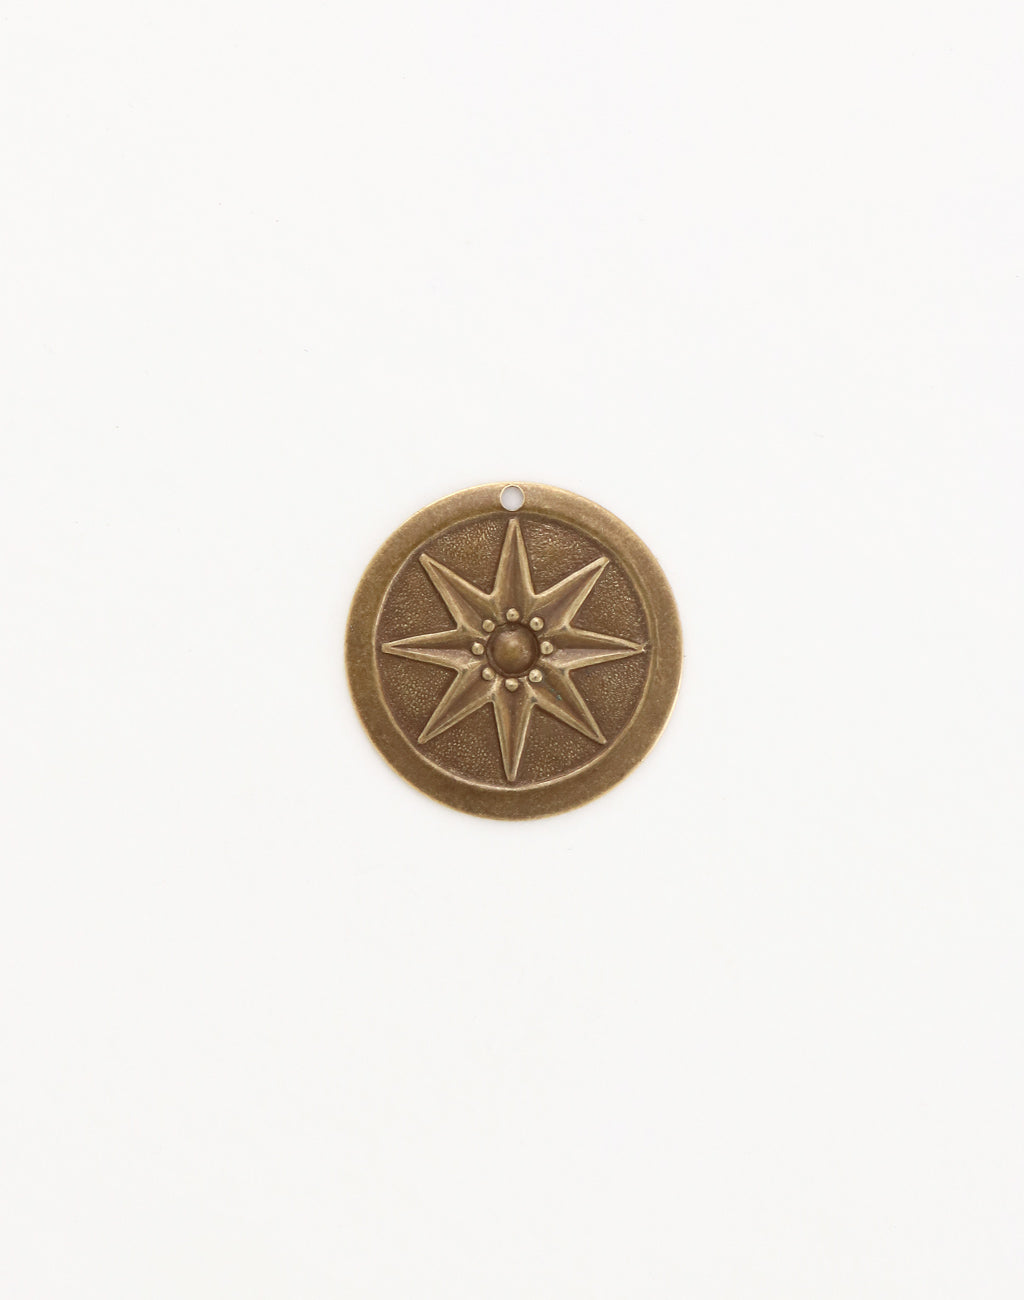 Compass Star, 21.5mm, (1pcs)